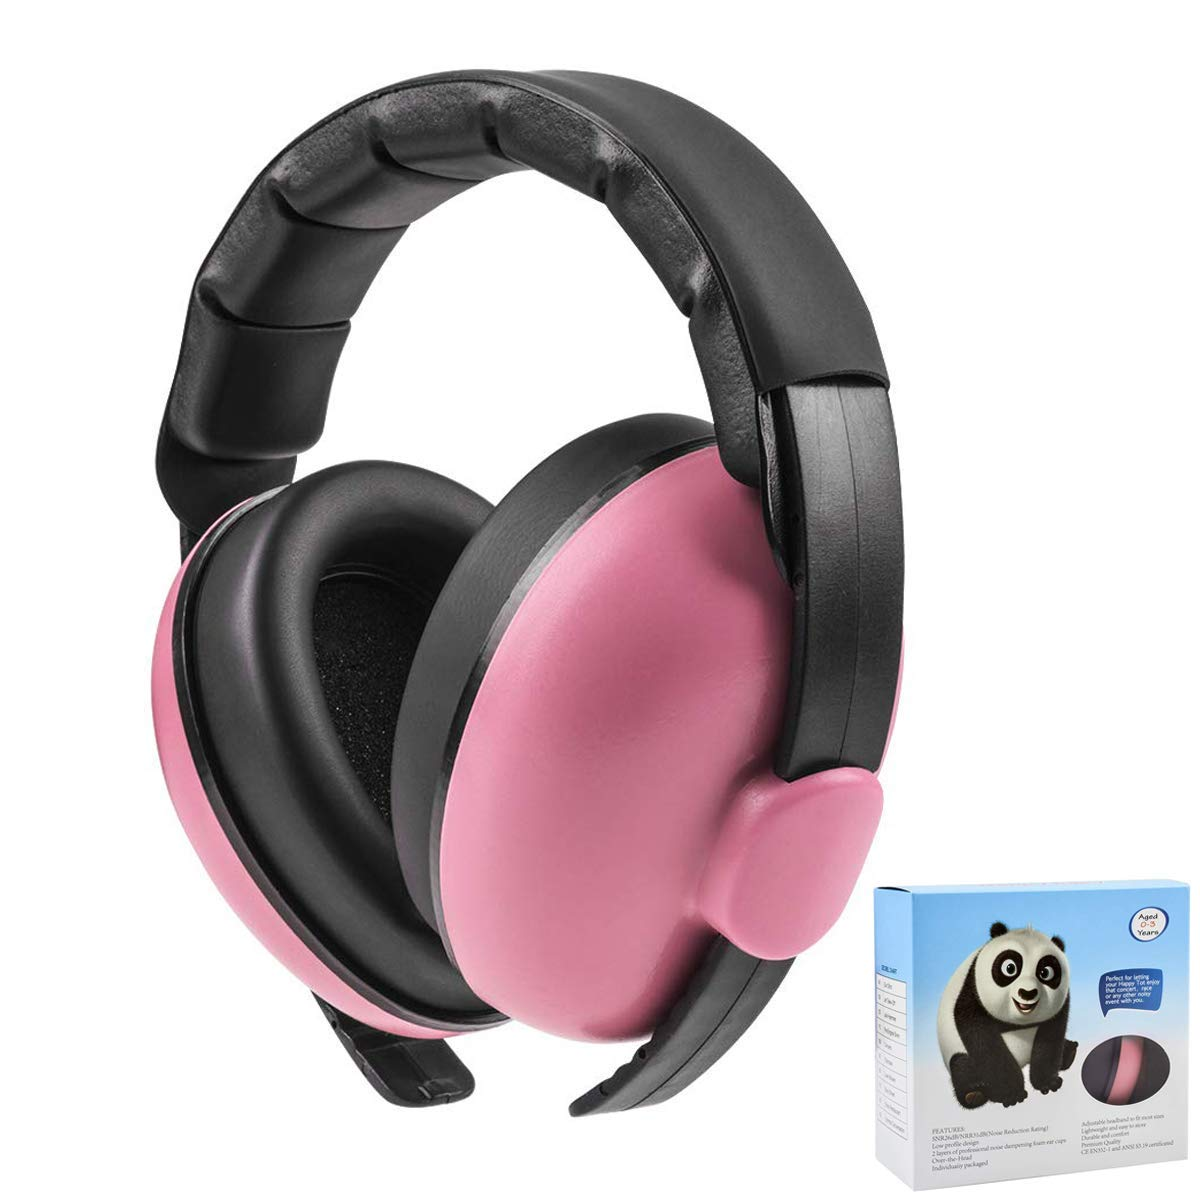 Firework Concerts for Babies Sleeping Airplane Ear Protection Earmuffs Noise Reduction for 0-3 Years Kids//Toddlers//Infant Movie Theater Mint Green Baby Noise Cancelling Headphones